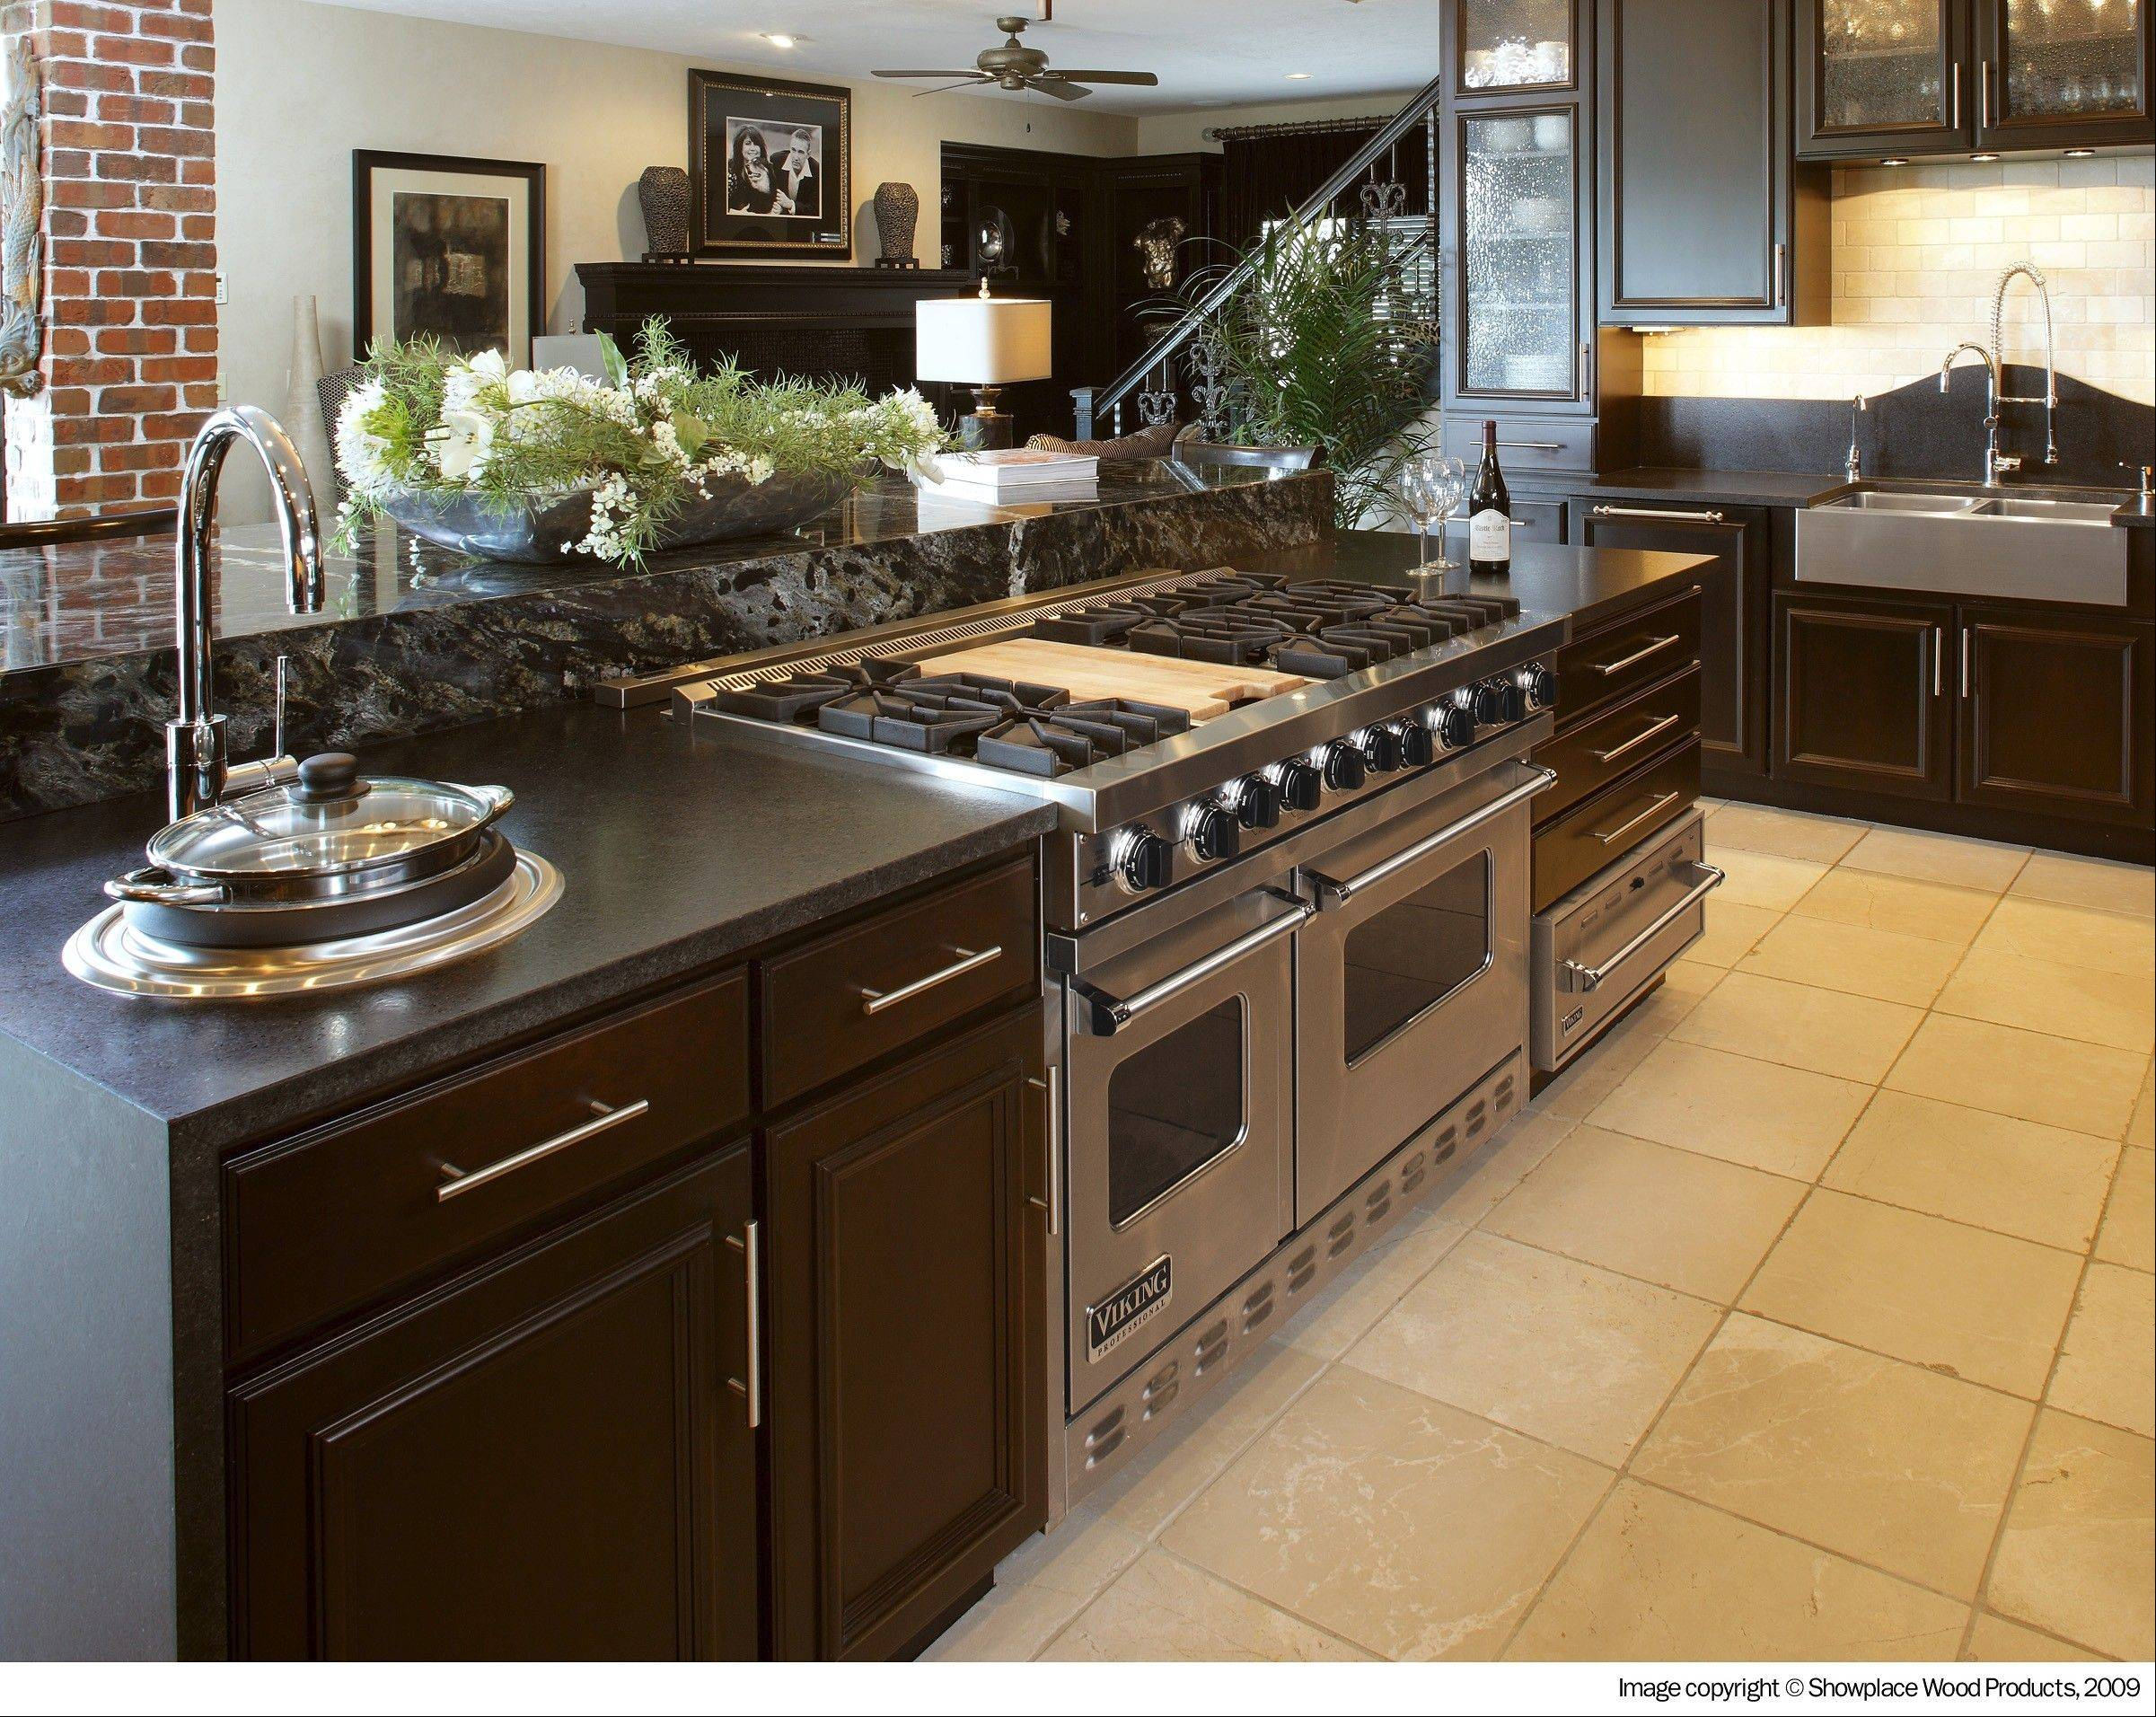 DreamMaker Kitchen And Bath Has A 1,500 Square Foot Showroom In Schaumburg.